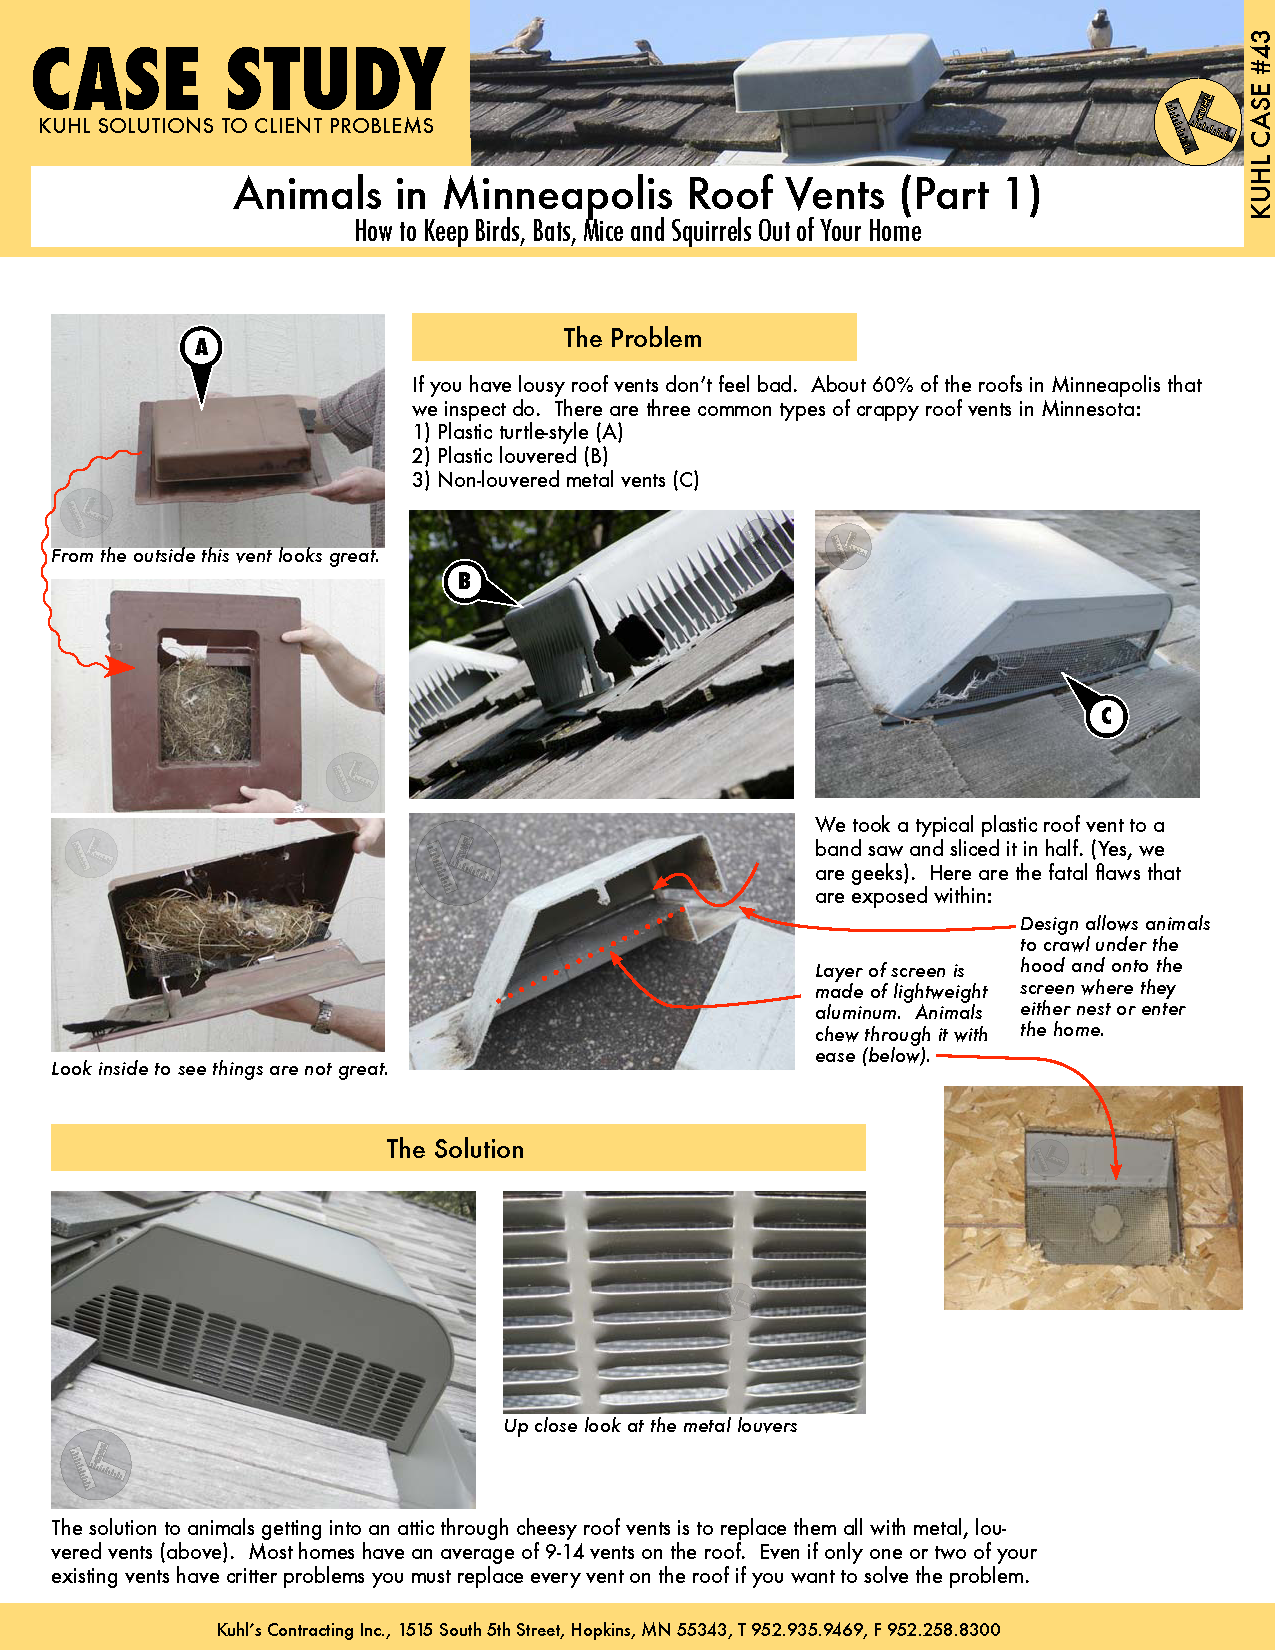 Animals in Minneapolis Roof Vents (Part 1): How to Keep Critters Out of Your Home